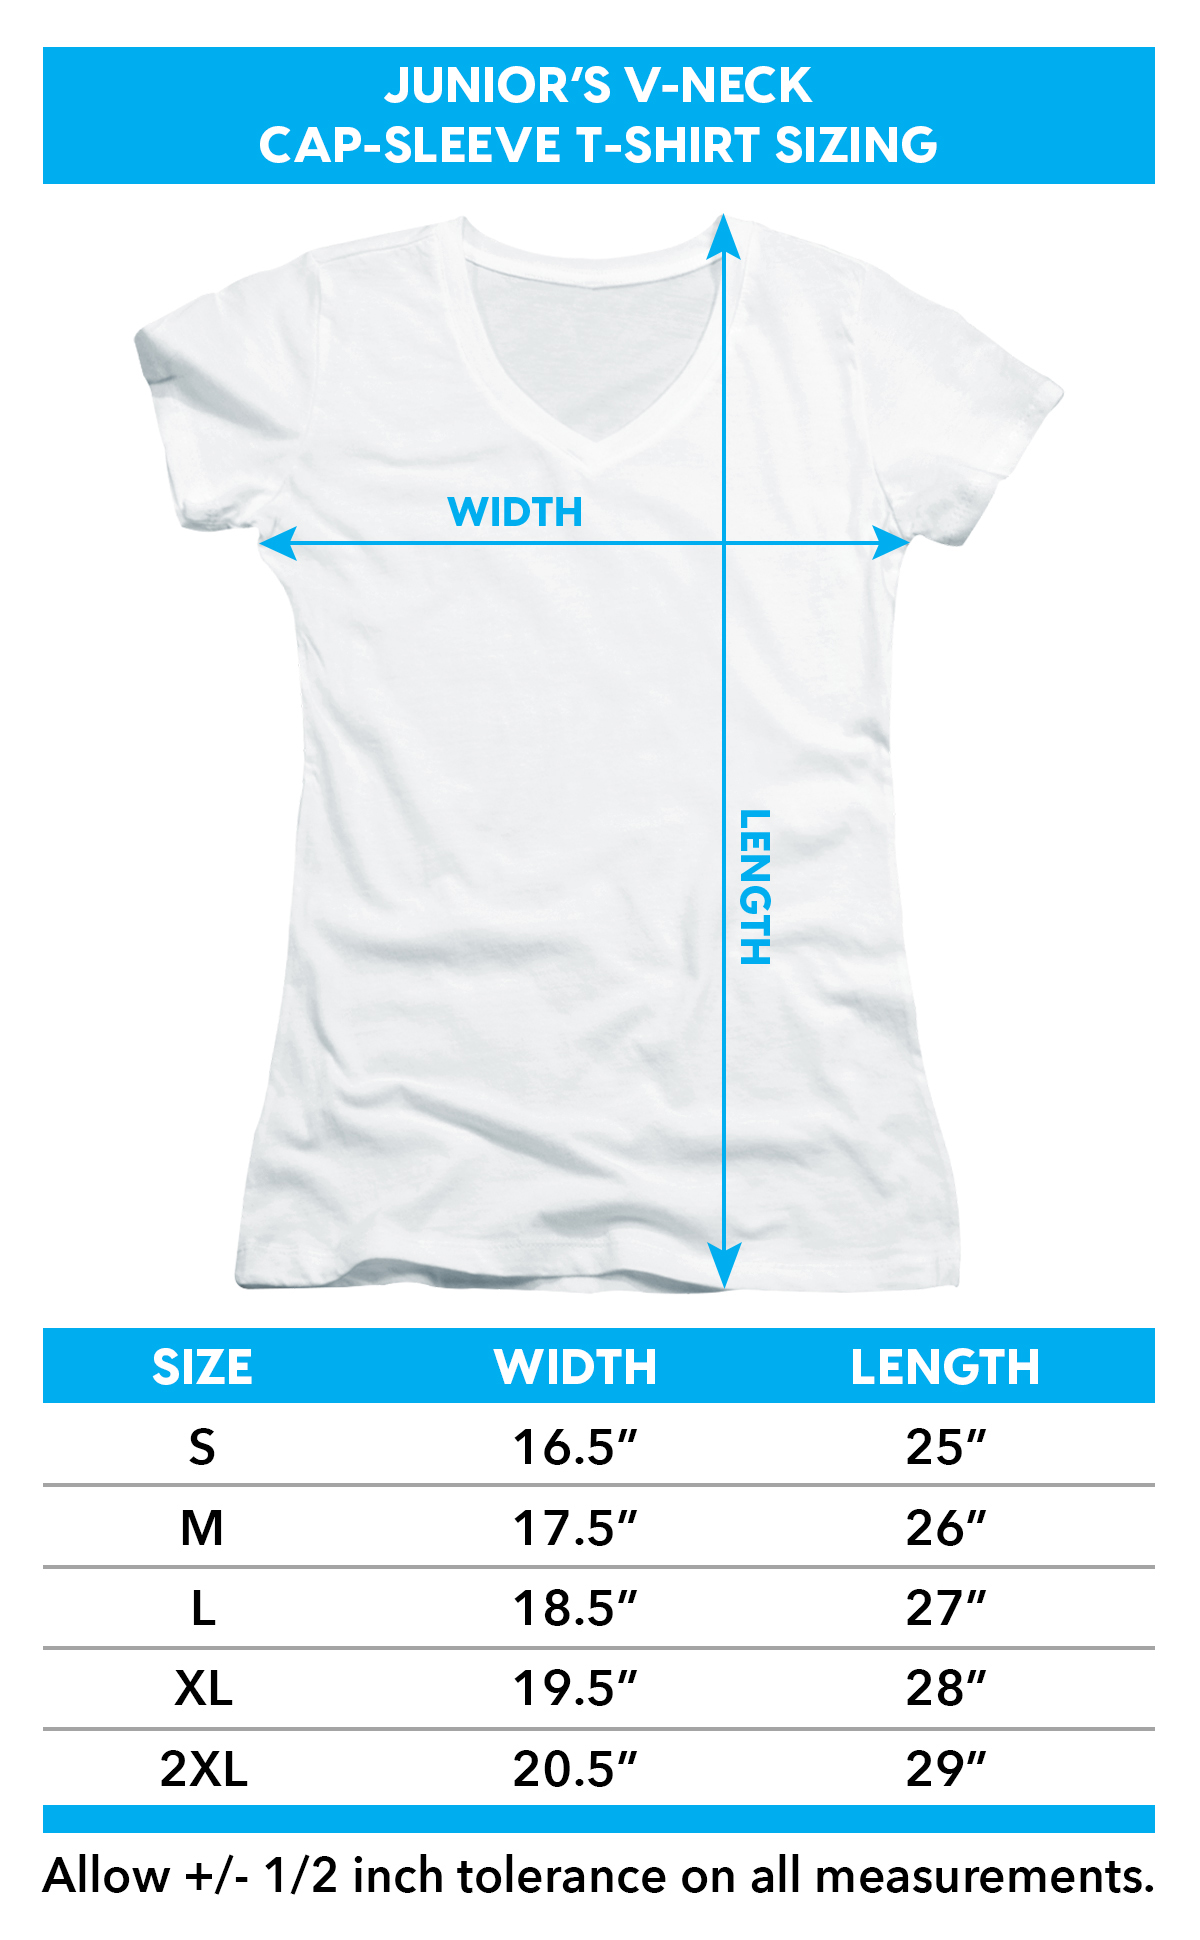 Sizing chart for Starship Troopers Girls V Neck - ISLA Nublar 93 TRV-SONYM116-JV